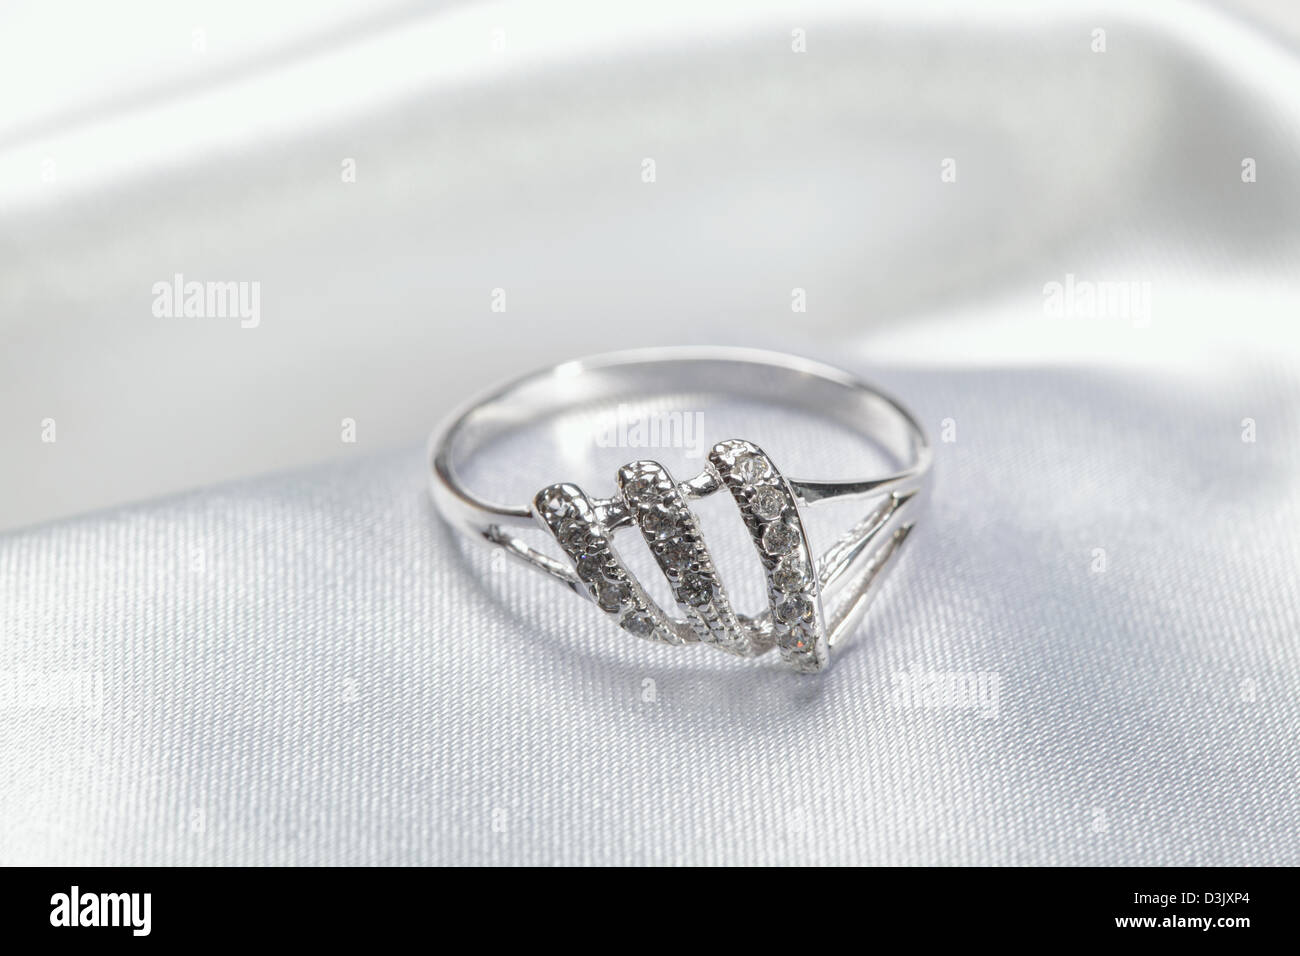 Close up photo of platinum or silver ring - Stock Image